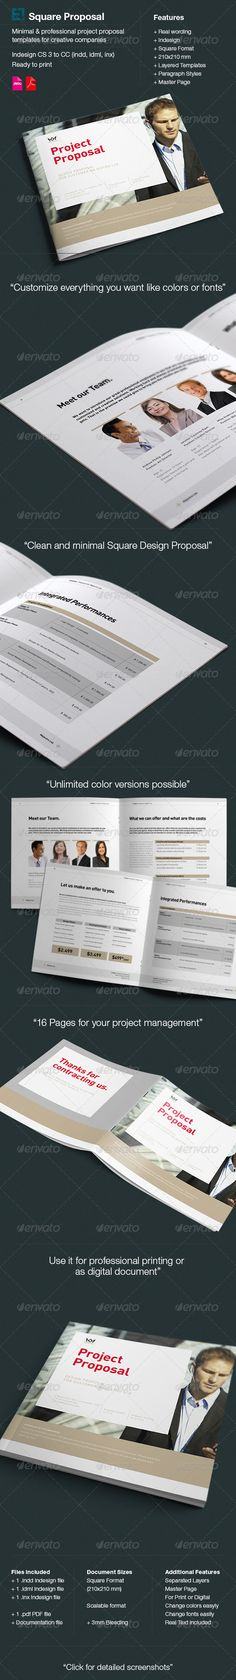 SEO Report / Proposal Template - A4 Landscape by sthalassinos SEO